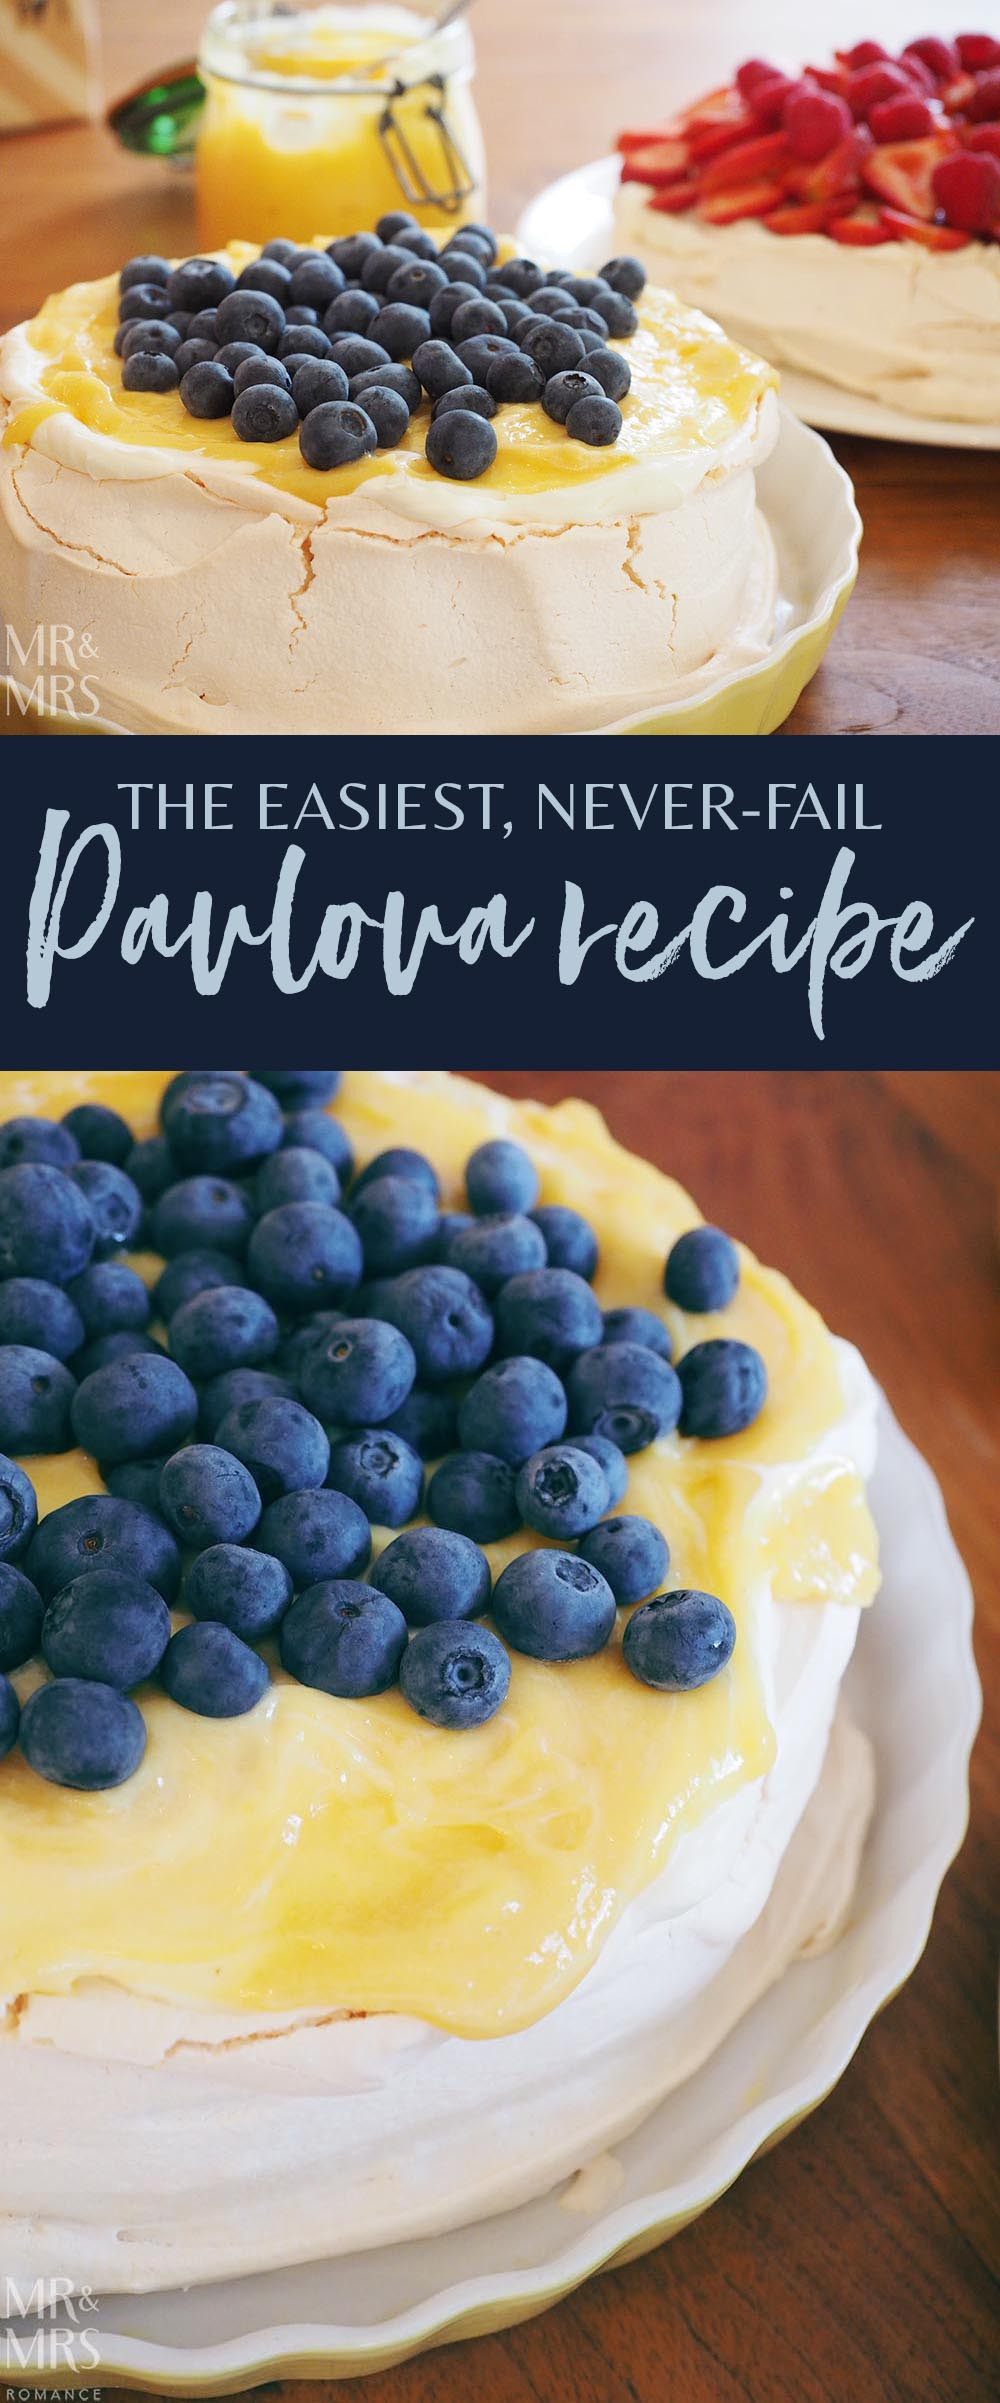 Never-fail easy pavlova recipe - Mr & Mrs Romance